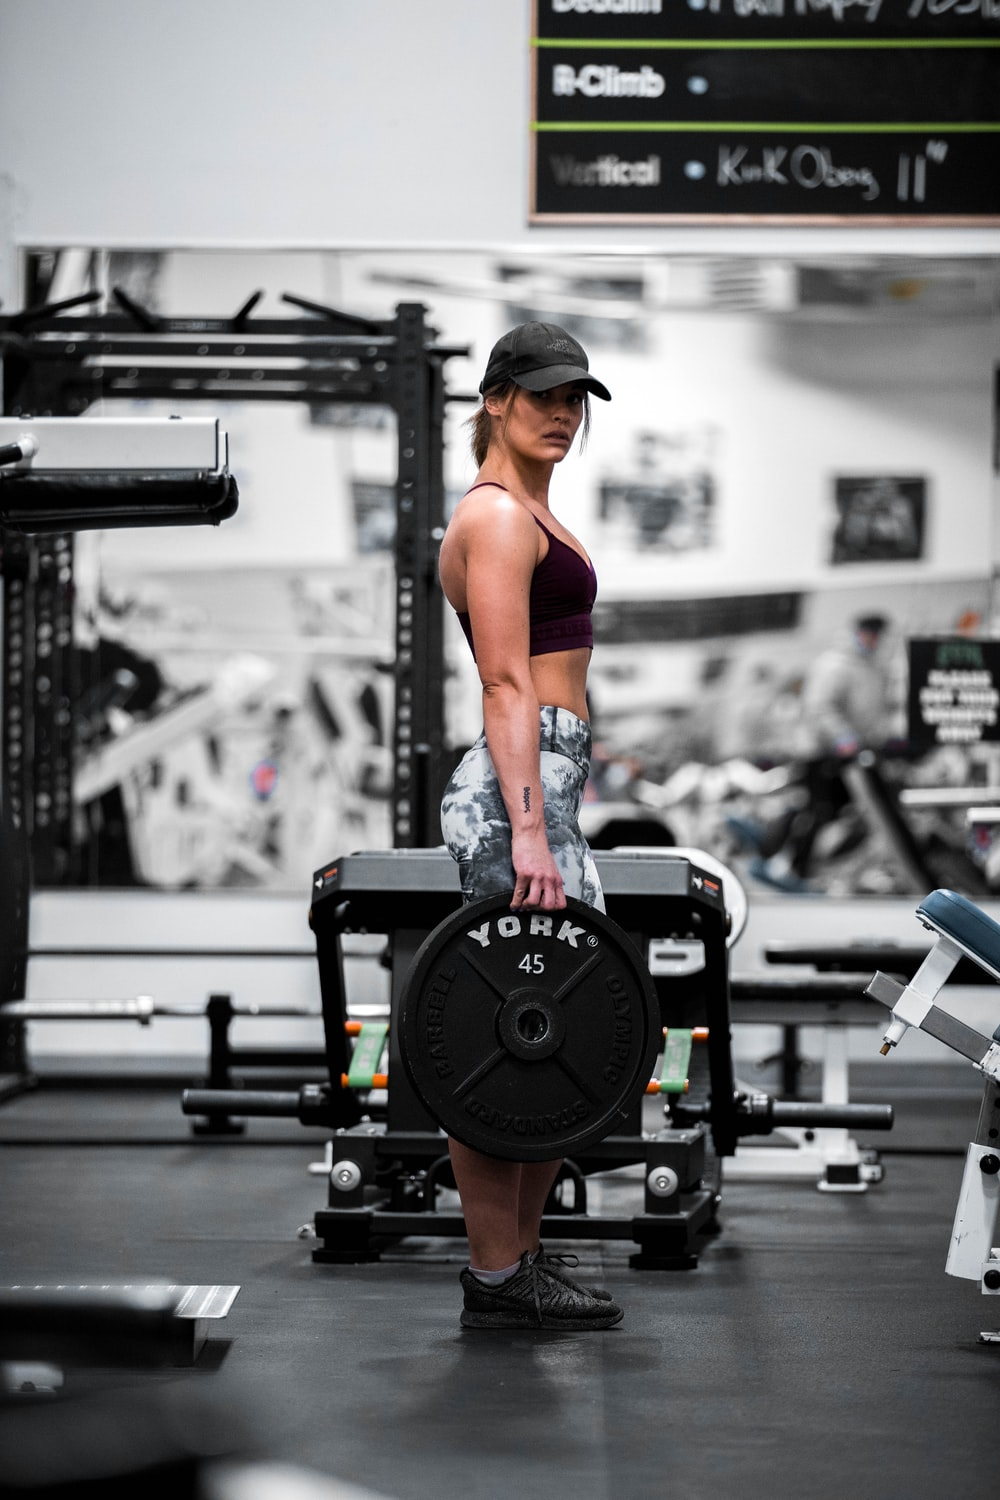 woman in red sports bra and black and gray shorts exercising on black exercise equipment